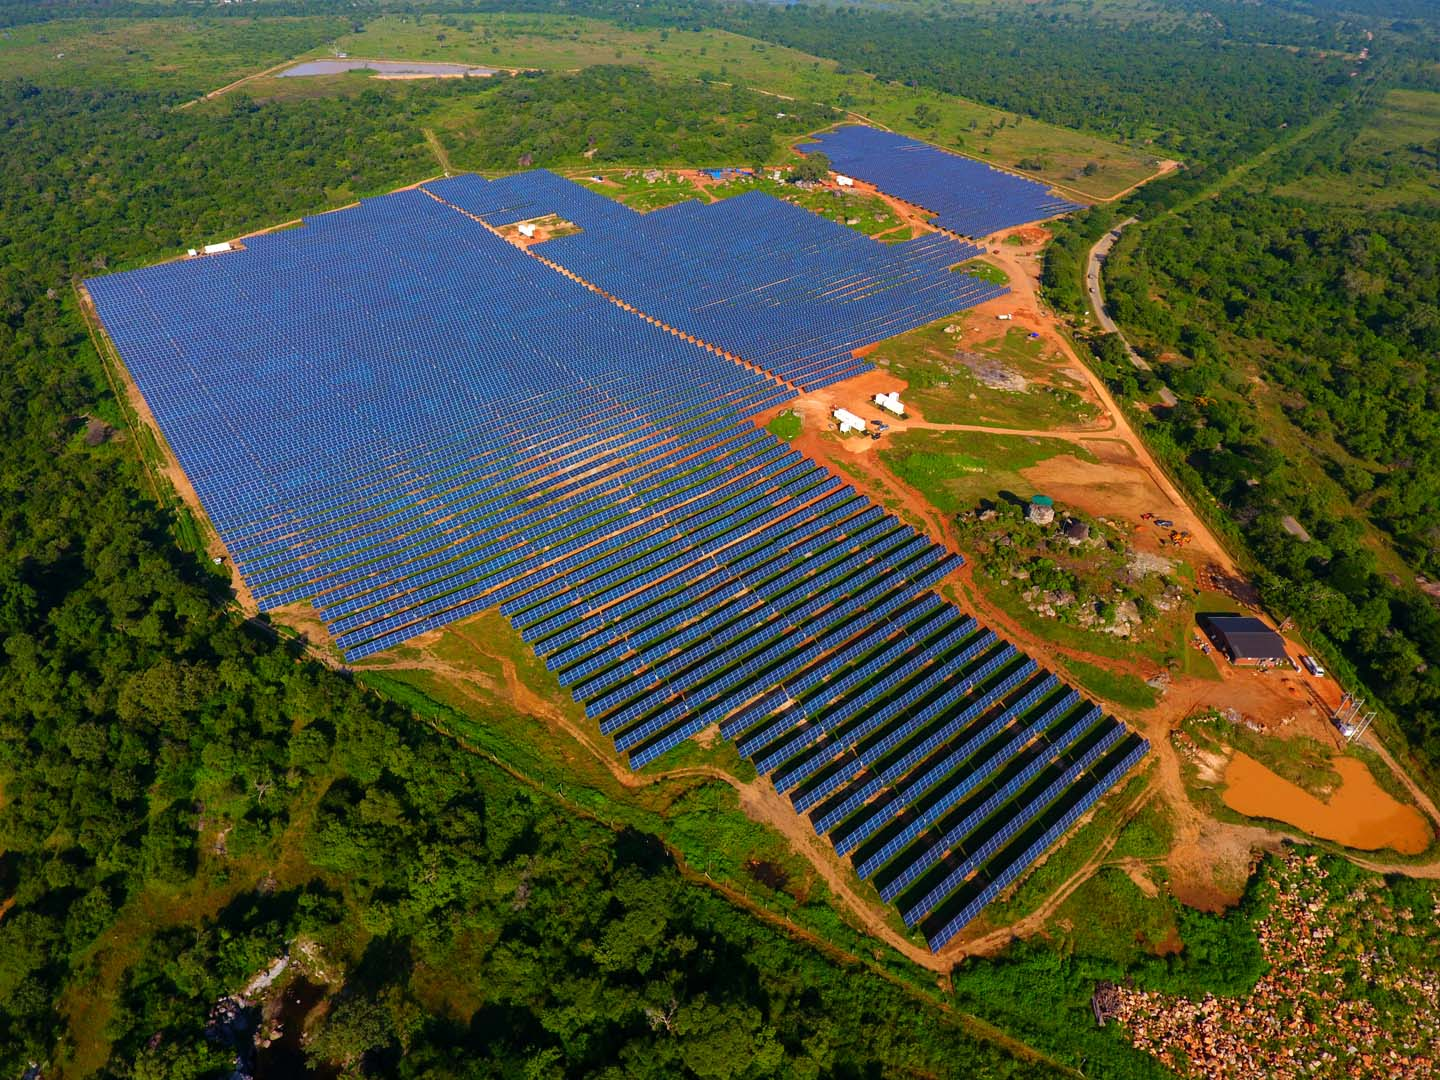 This project has consolidated the Spanish firm's internationalisation, having now installed over 12GW worldwide, with more than 600MW still currently in development. Source: Grupo Clavijo